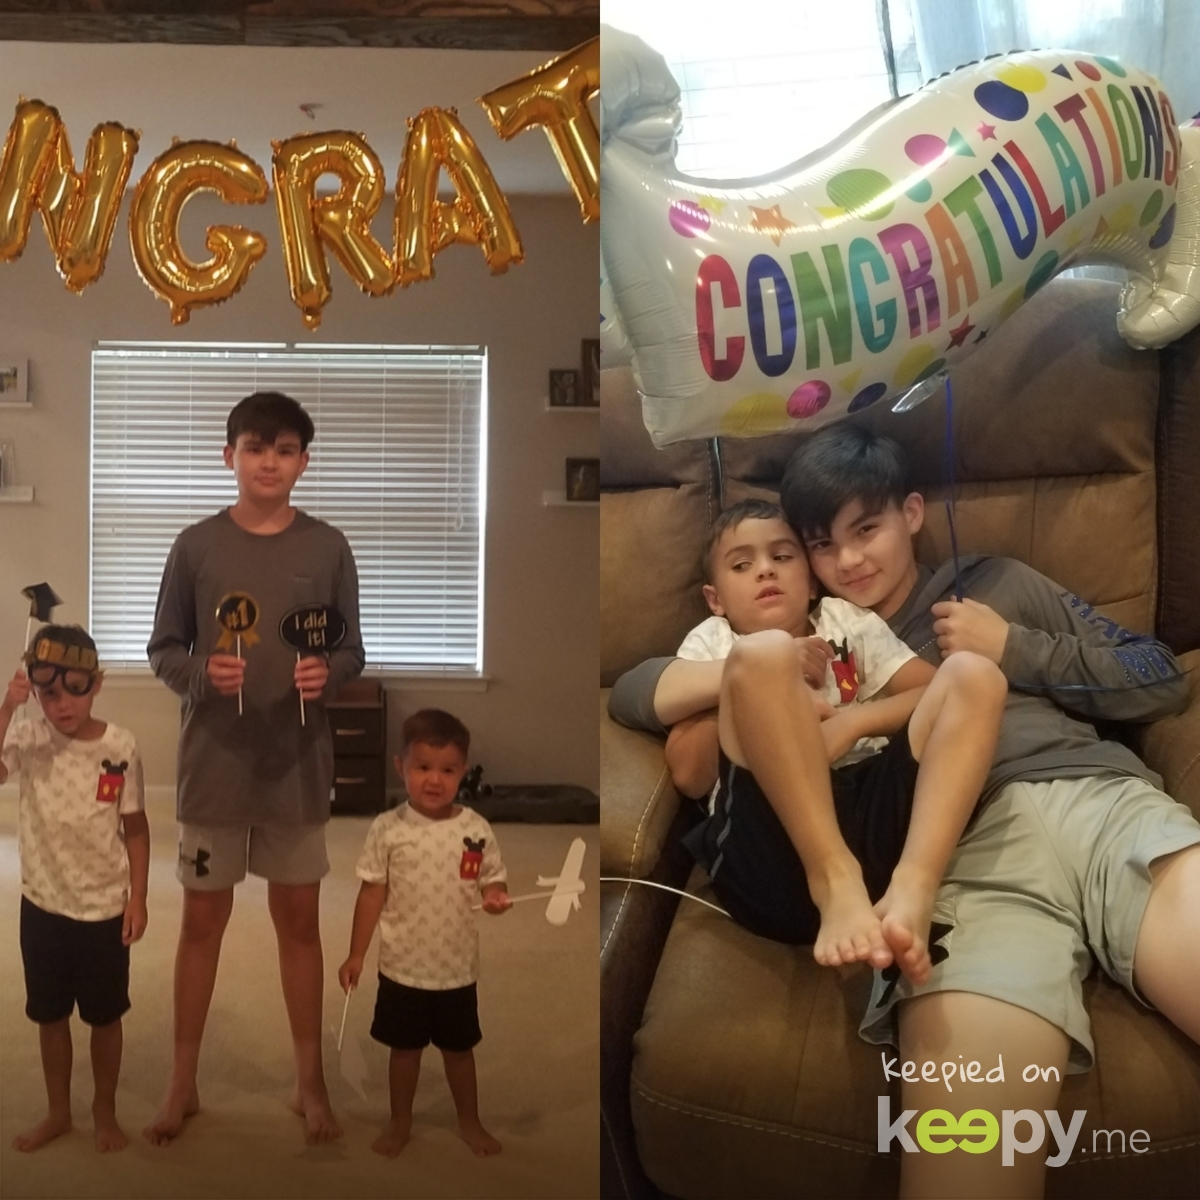 8th grade graduation for Bub and Pre K for Aiden! All virtual » Keepy.me